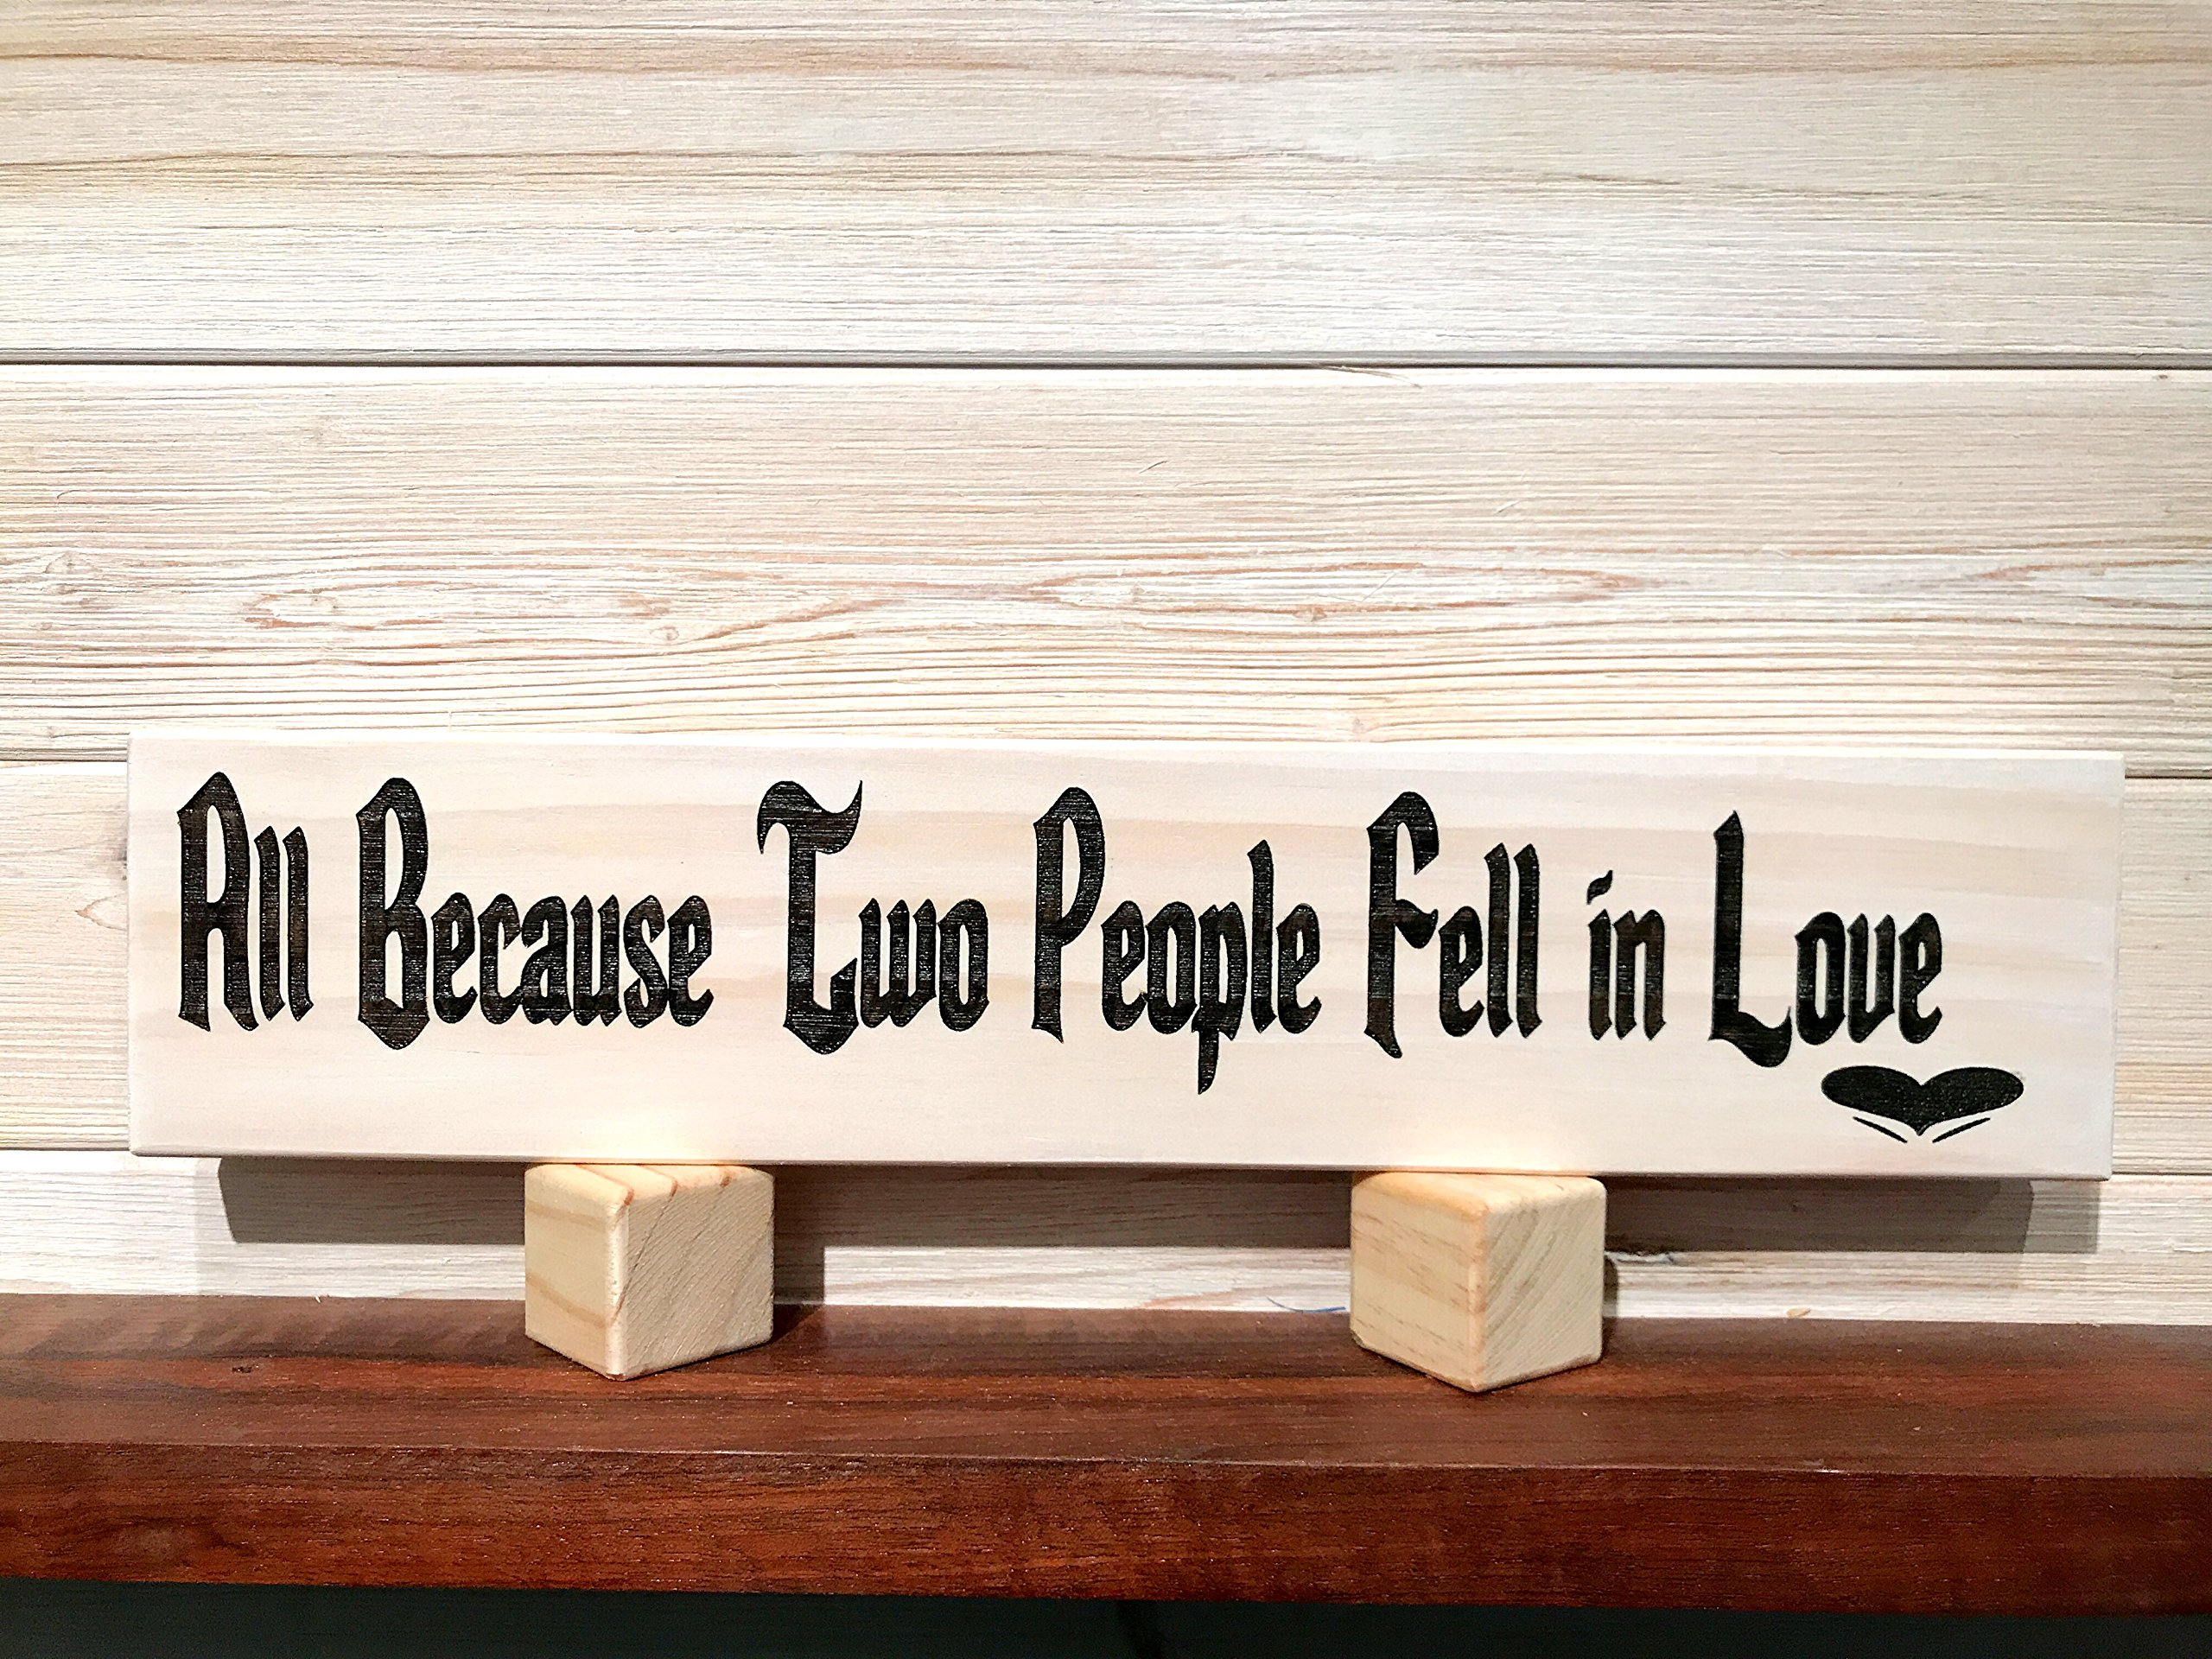 All Because Two People Fell In Love Wall Plaque Laser Engraved Personalized Custom Sign 163 by SignsByAllSeasons by All Seasons (Image #1)